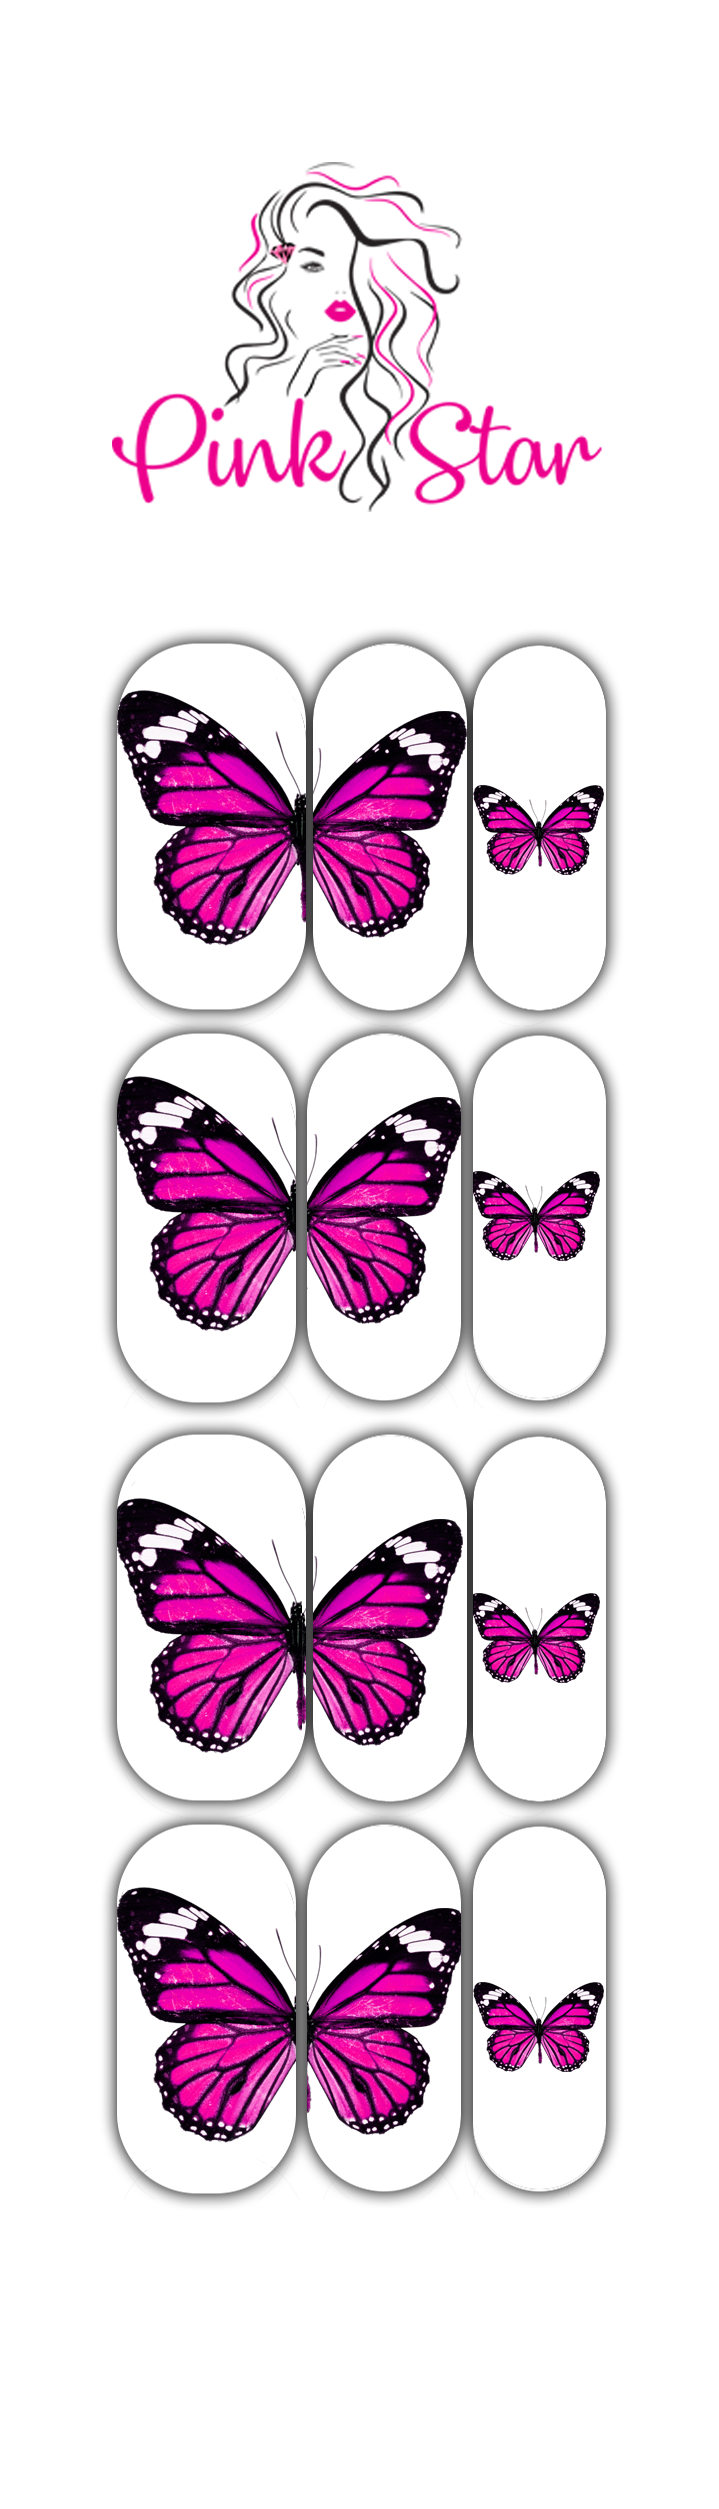 Butterfly 2 - The Pink Star Company